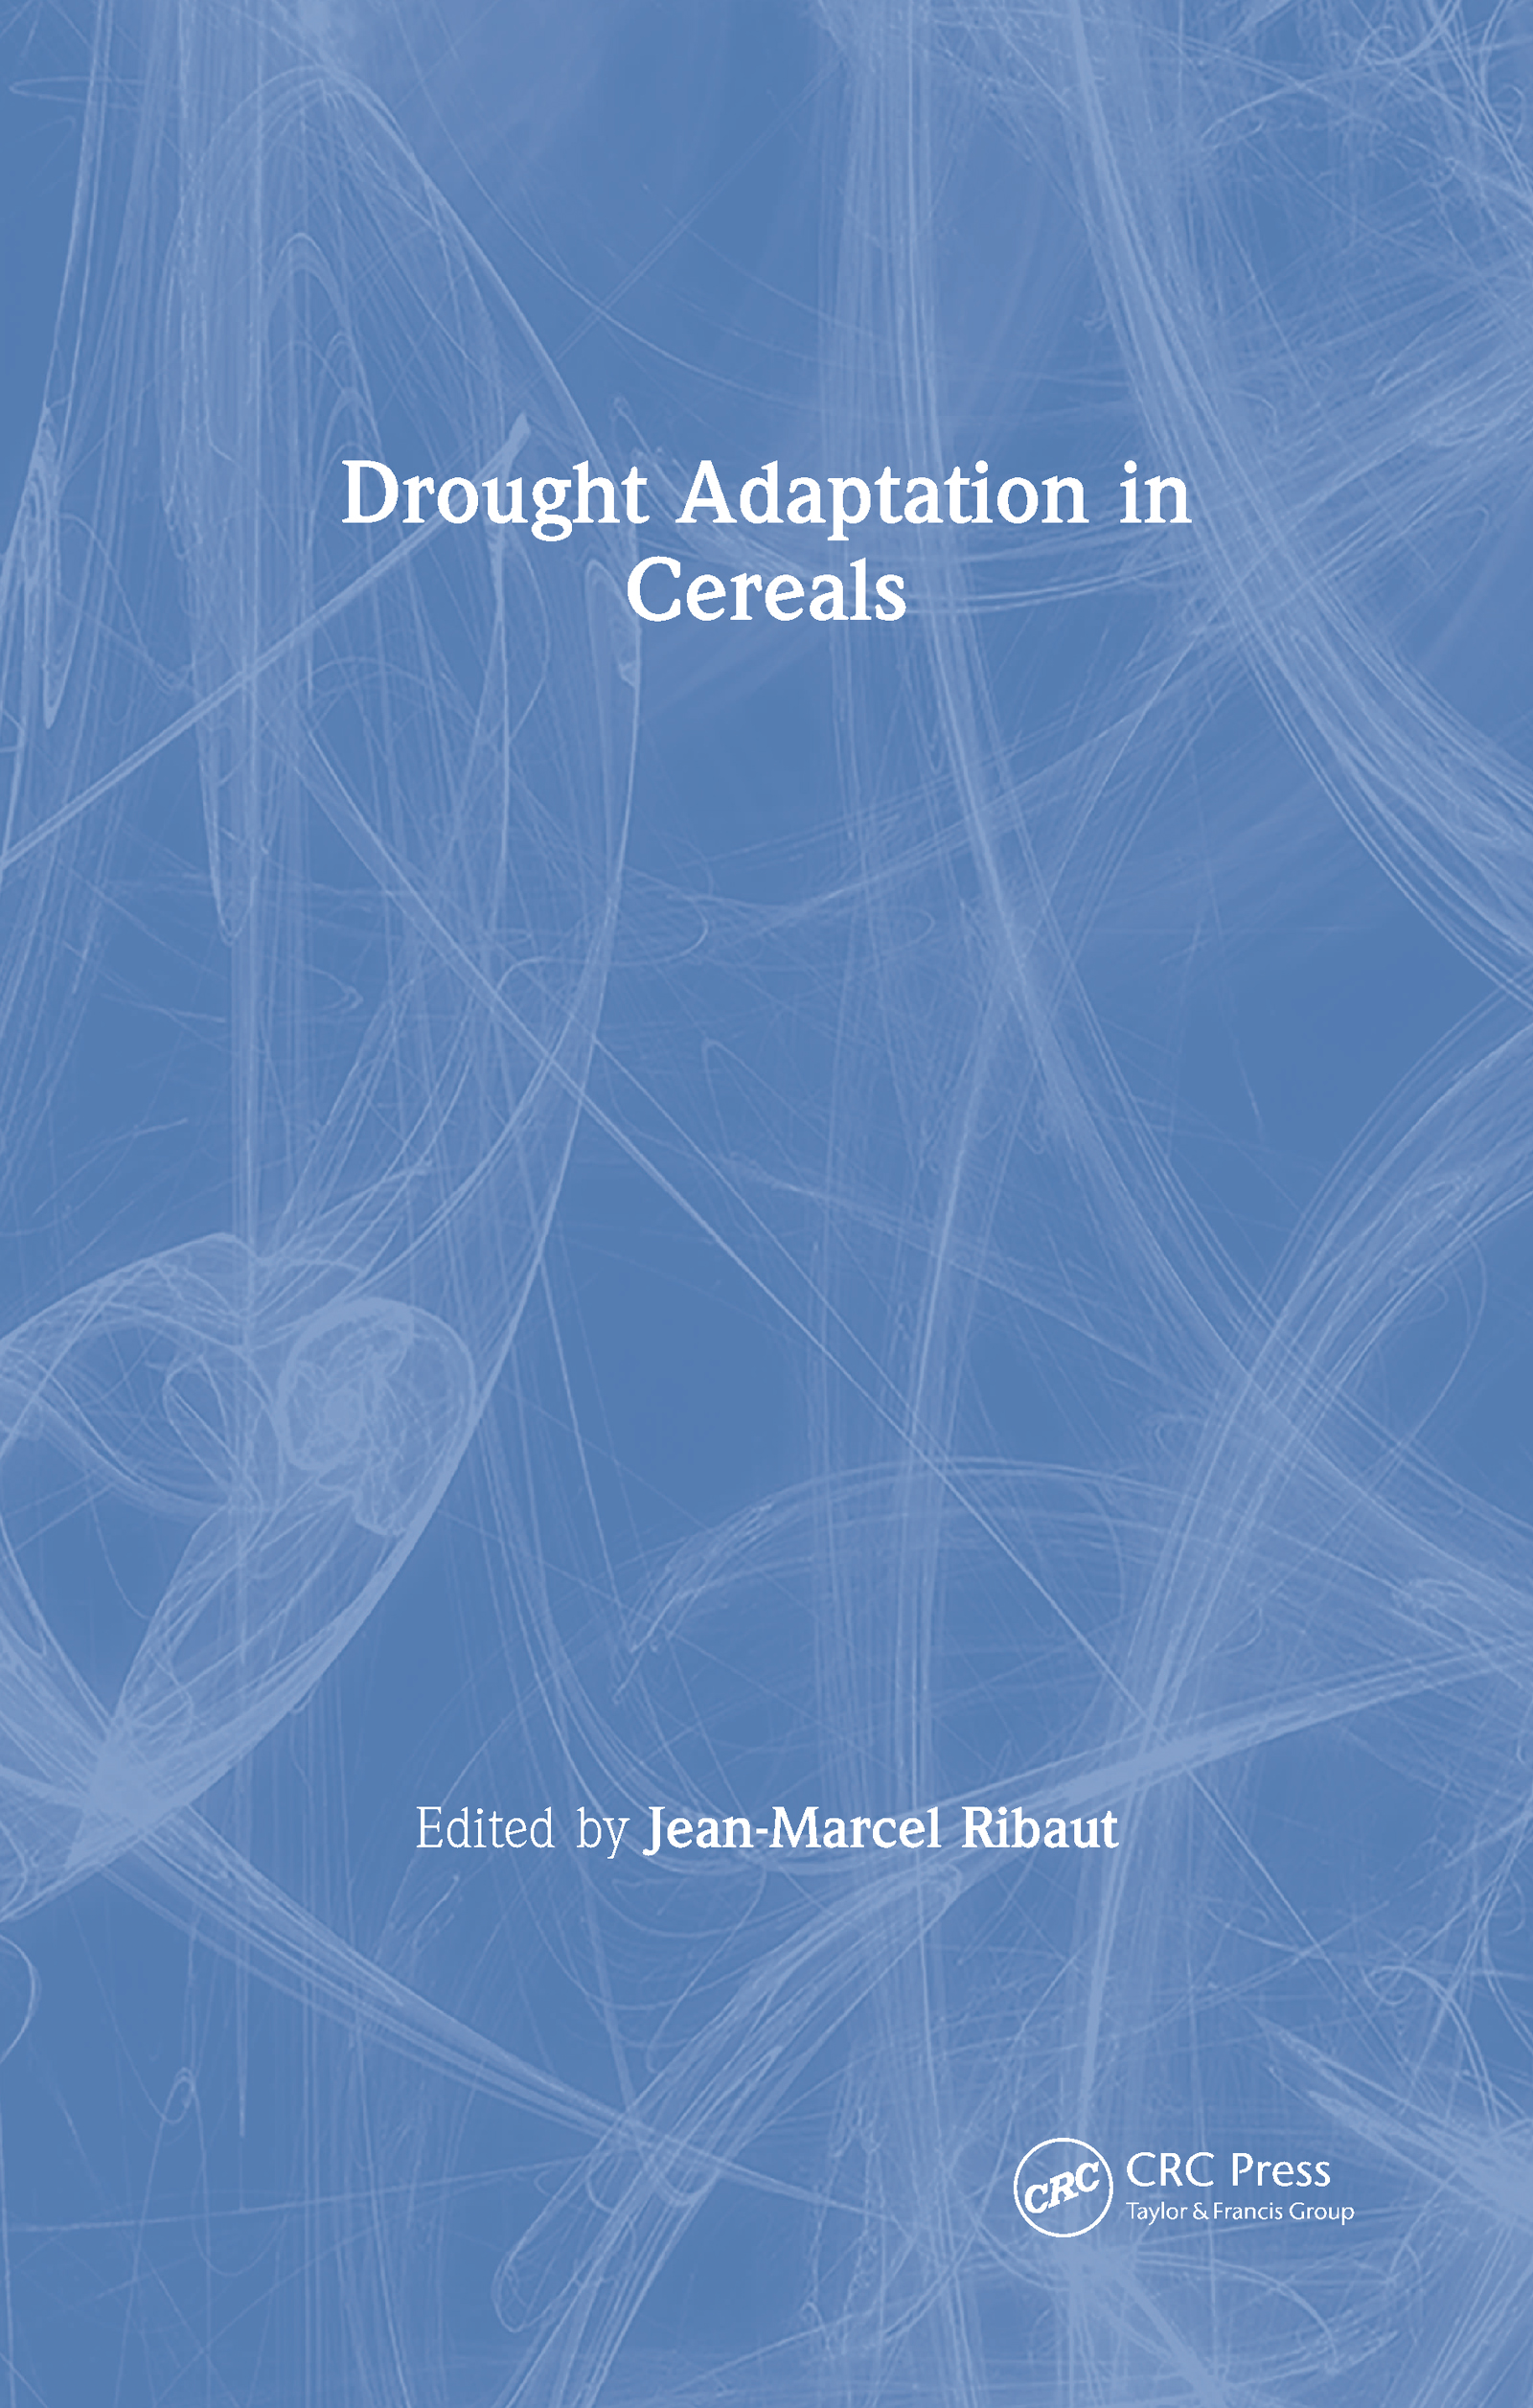 Drought Adaptation in Cereals